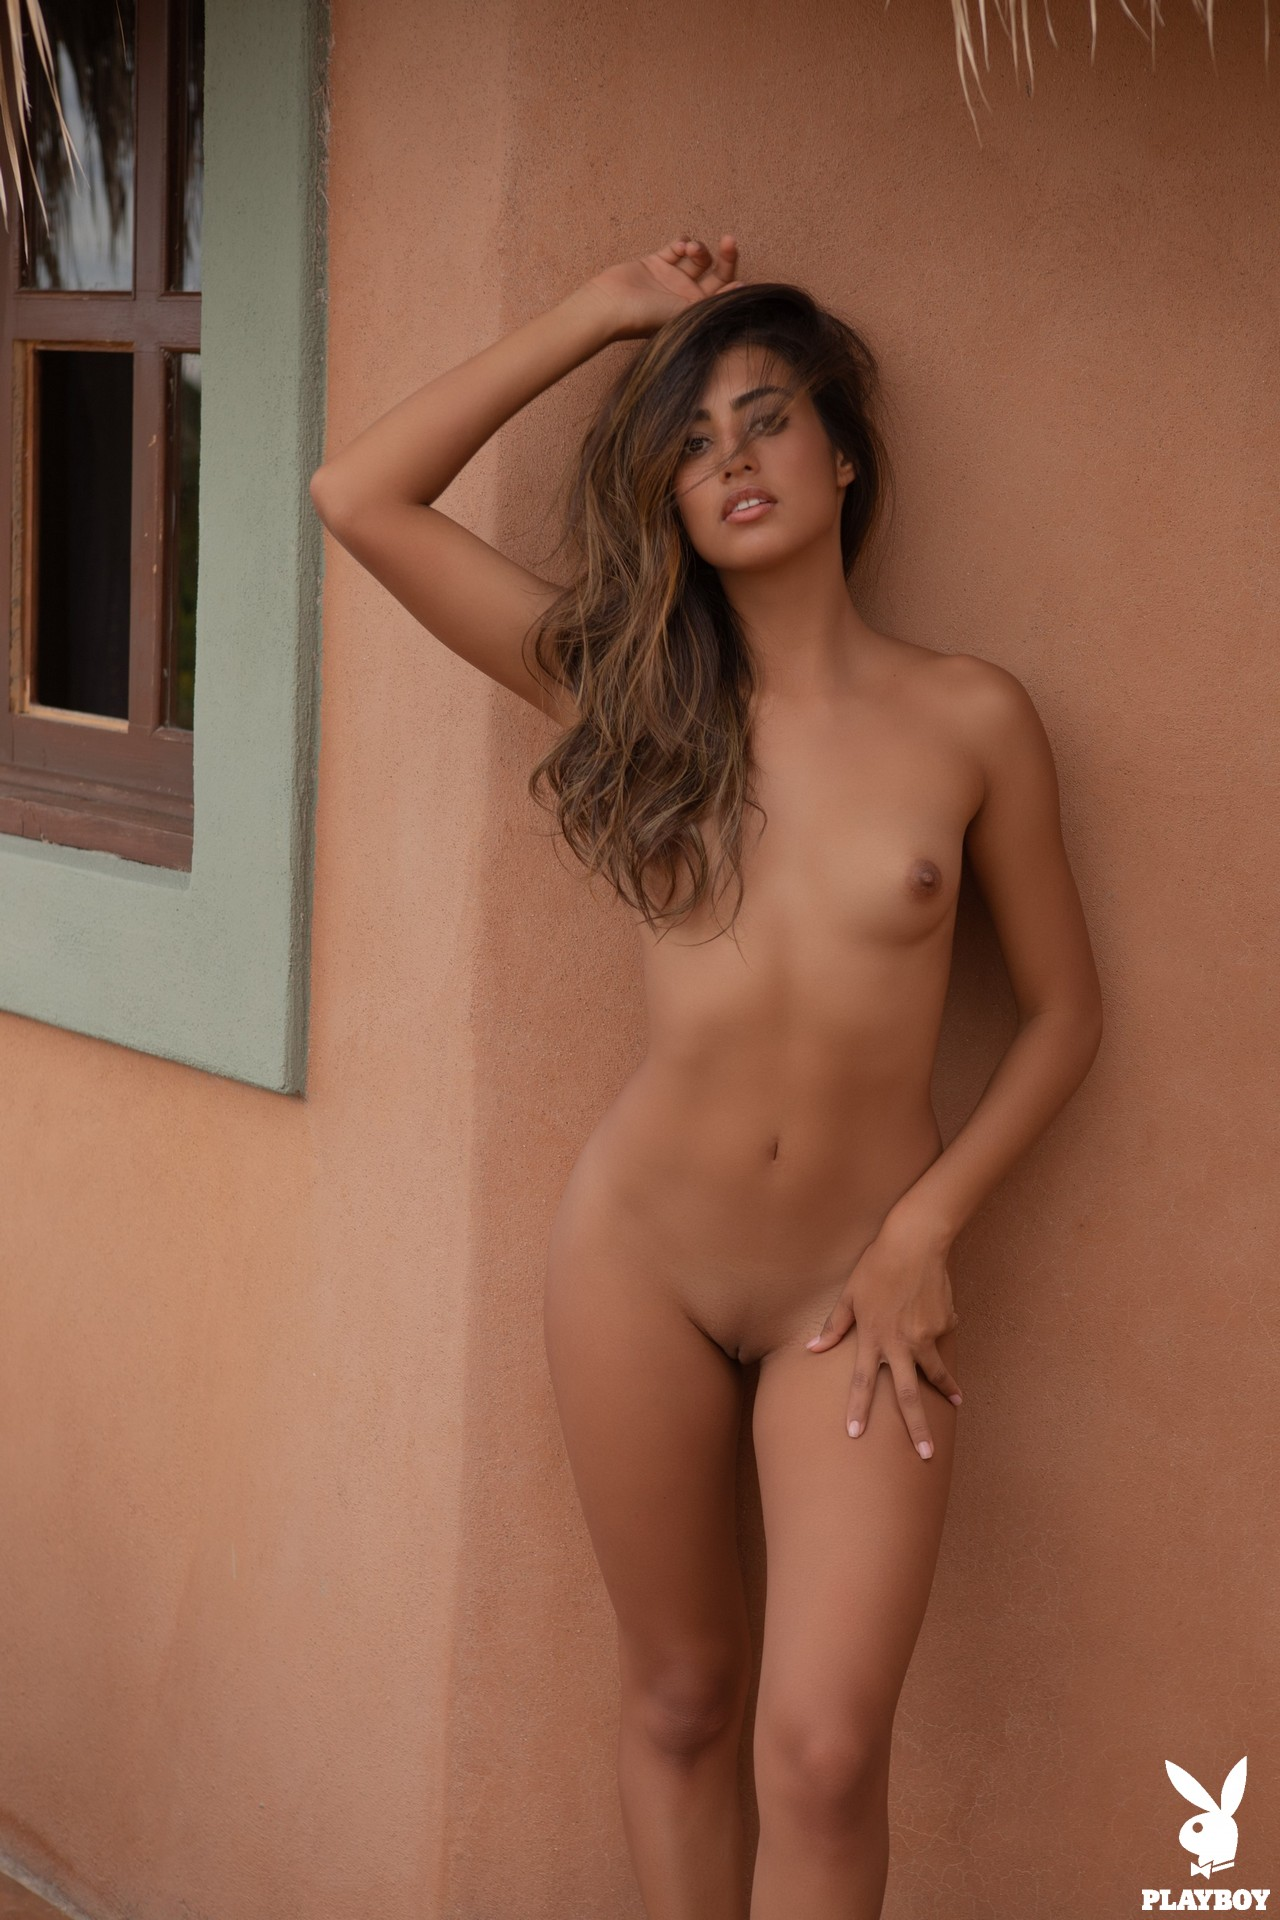 Katherinne Sofia in Finding Bliss - Playboy Plus 29